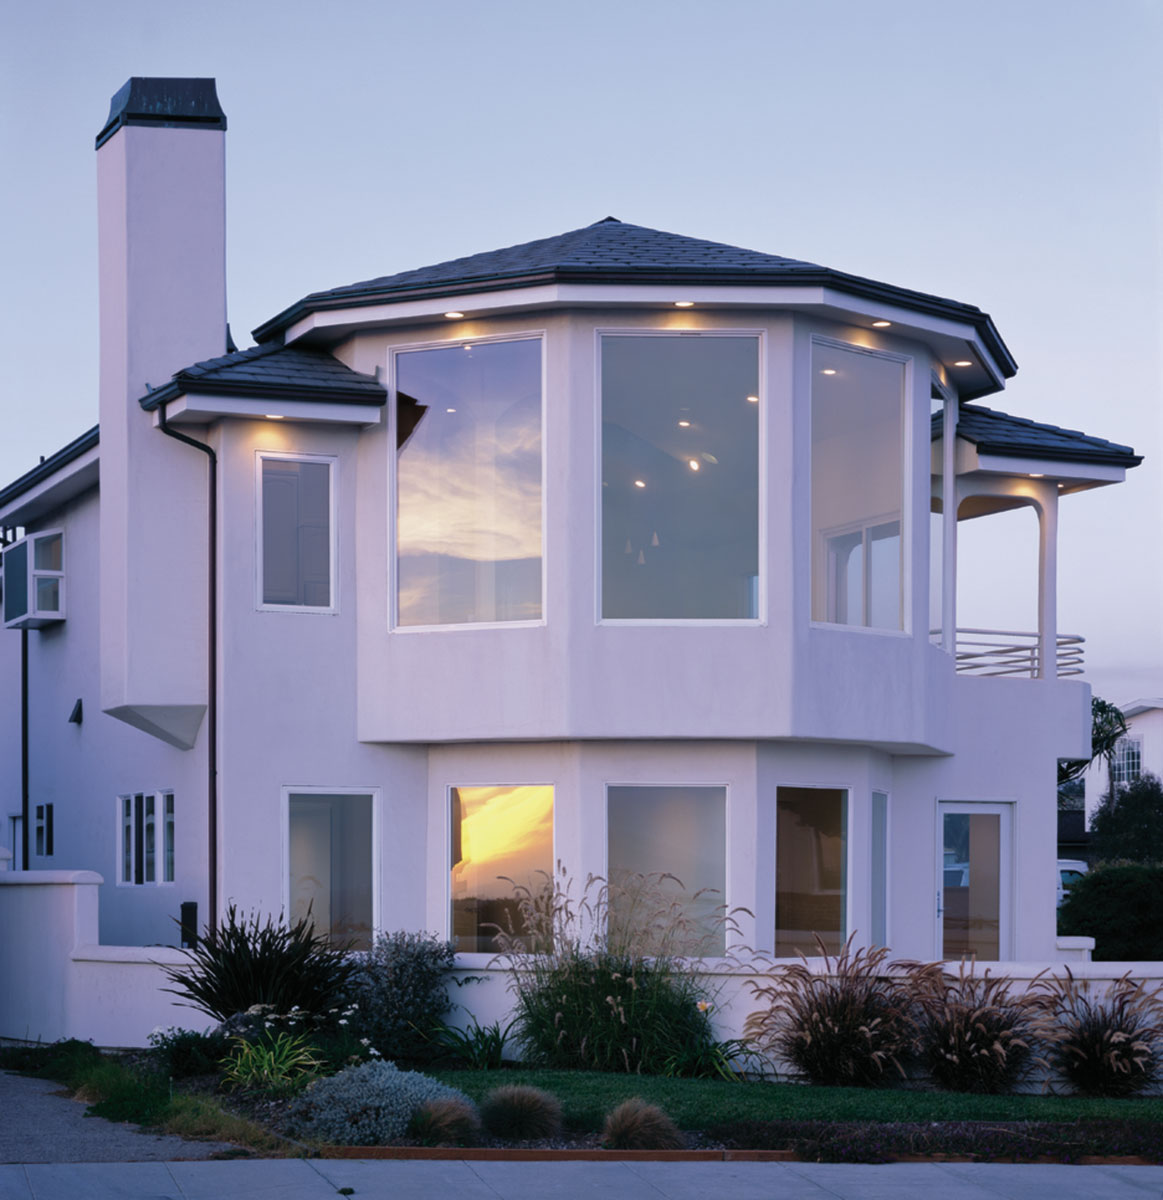 Superbe Amusing Design Of The Exterior Home Design Styles With White Wall Color  Ideas Added With Big